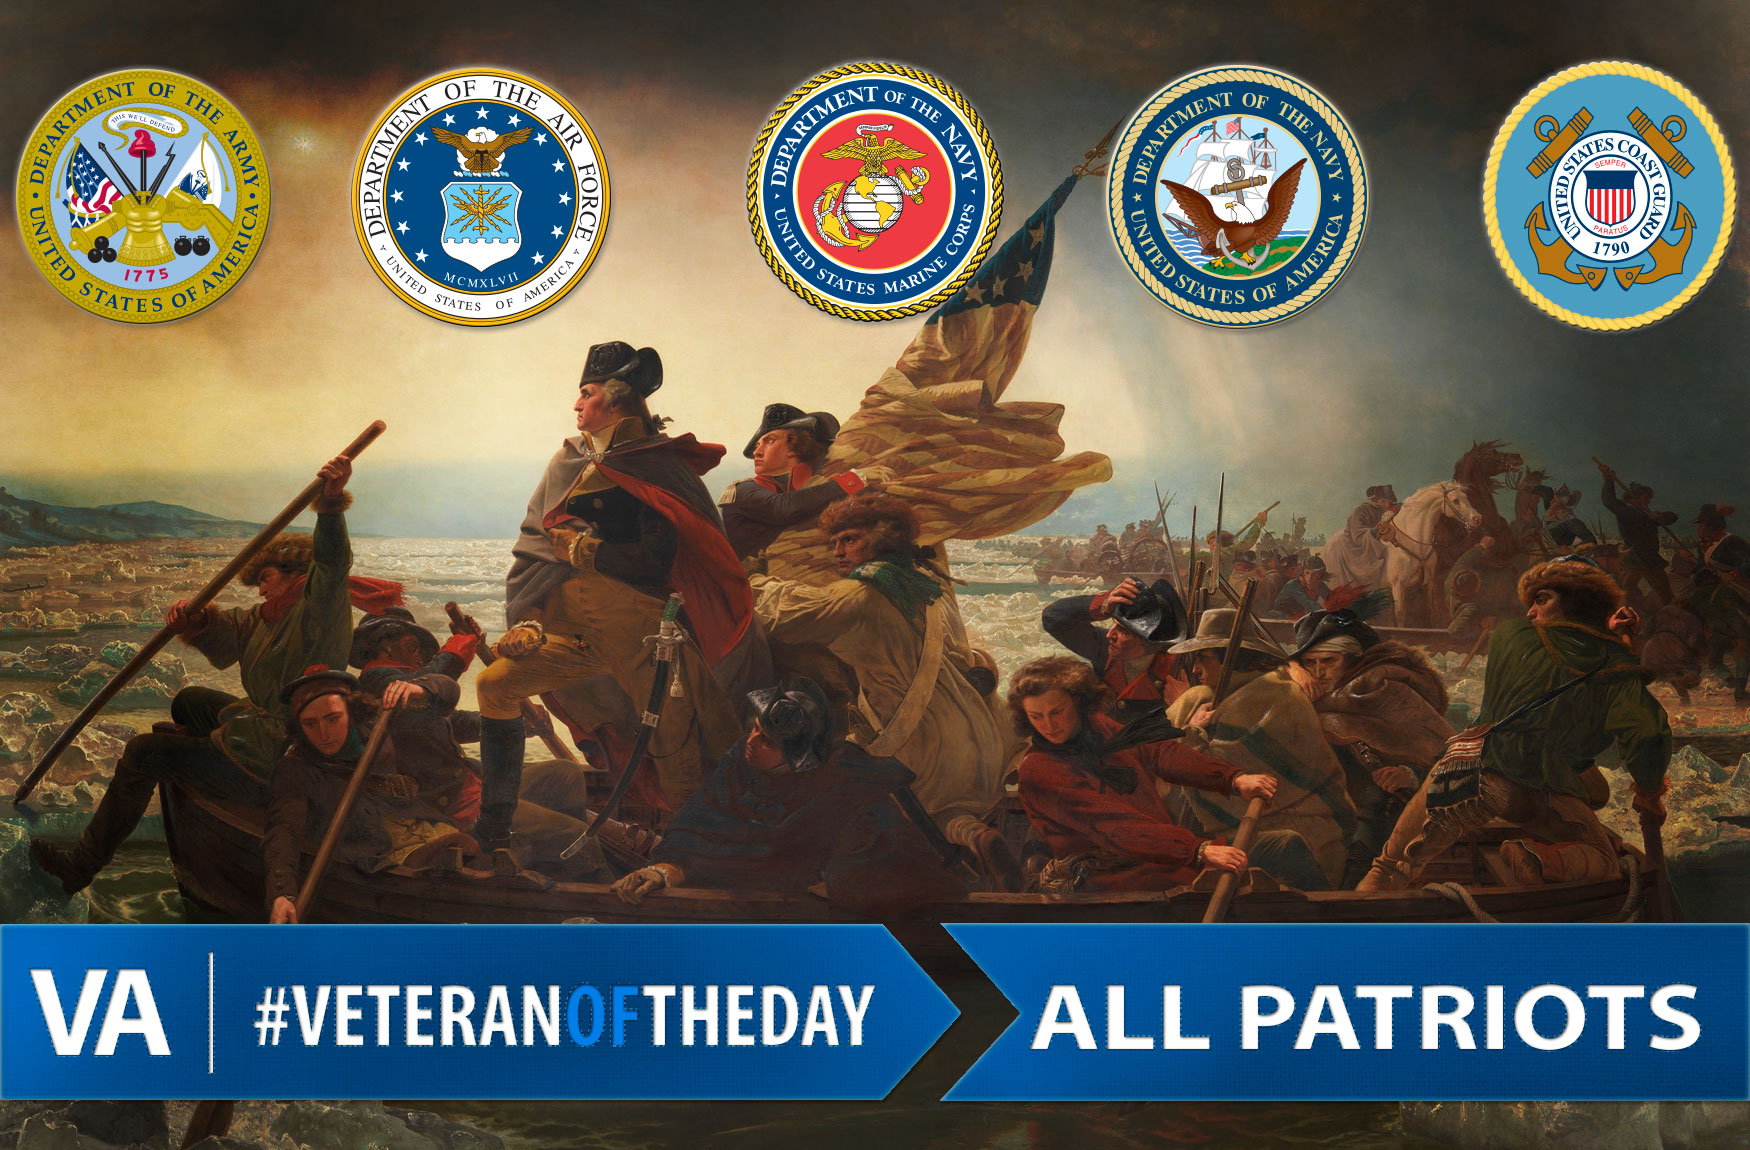 Patriot Princeton In >> #VeteranOfTheDay Each Patriot that Died for Freedom ...